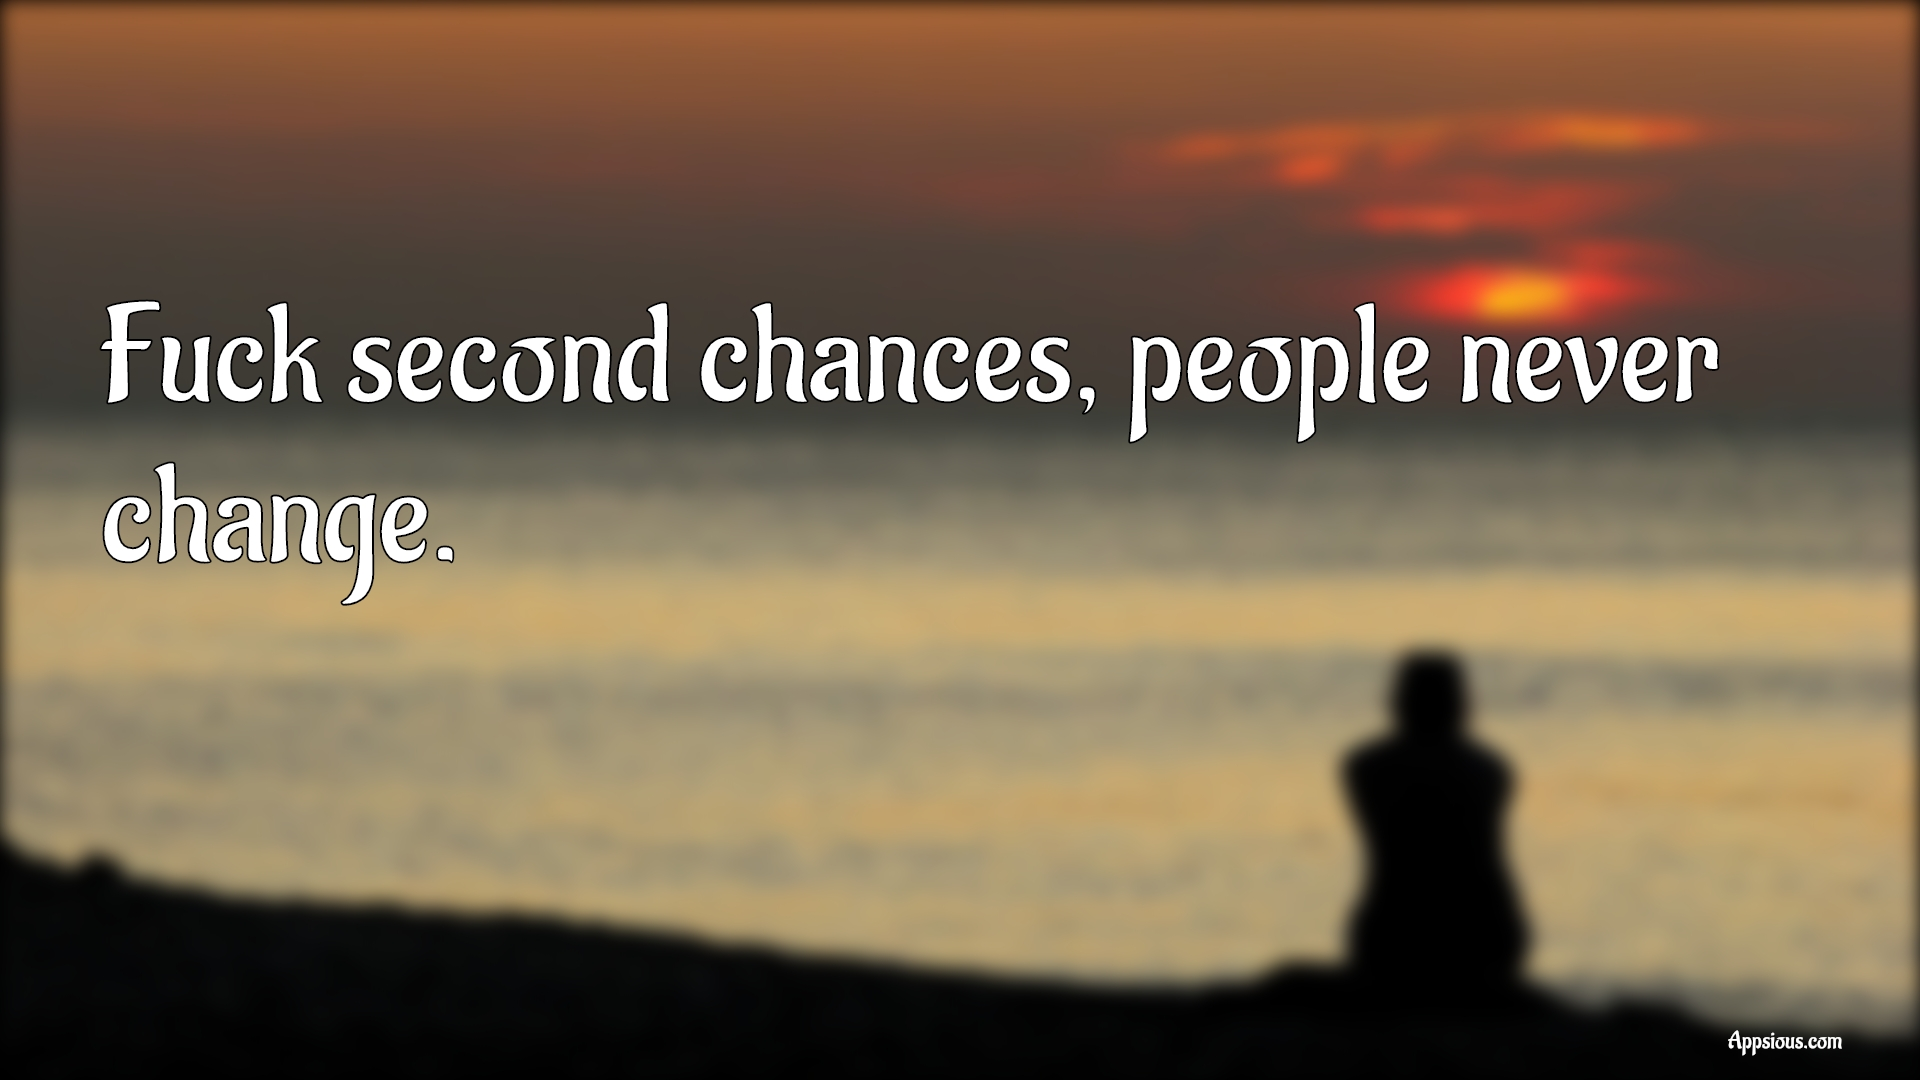 Fuck second chances, people never change.